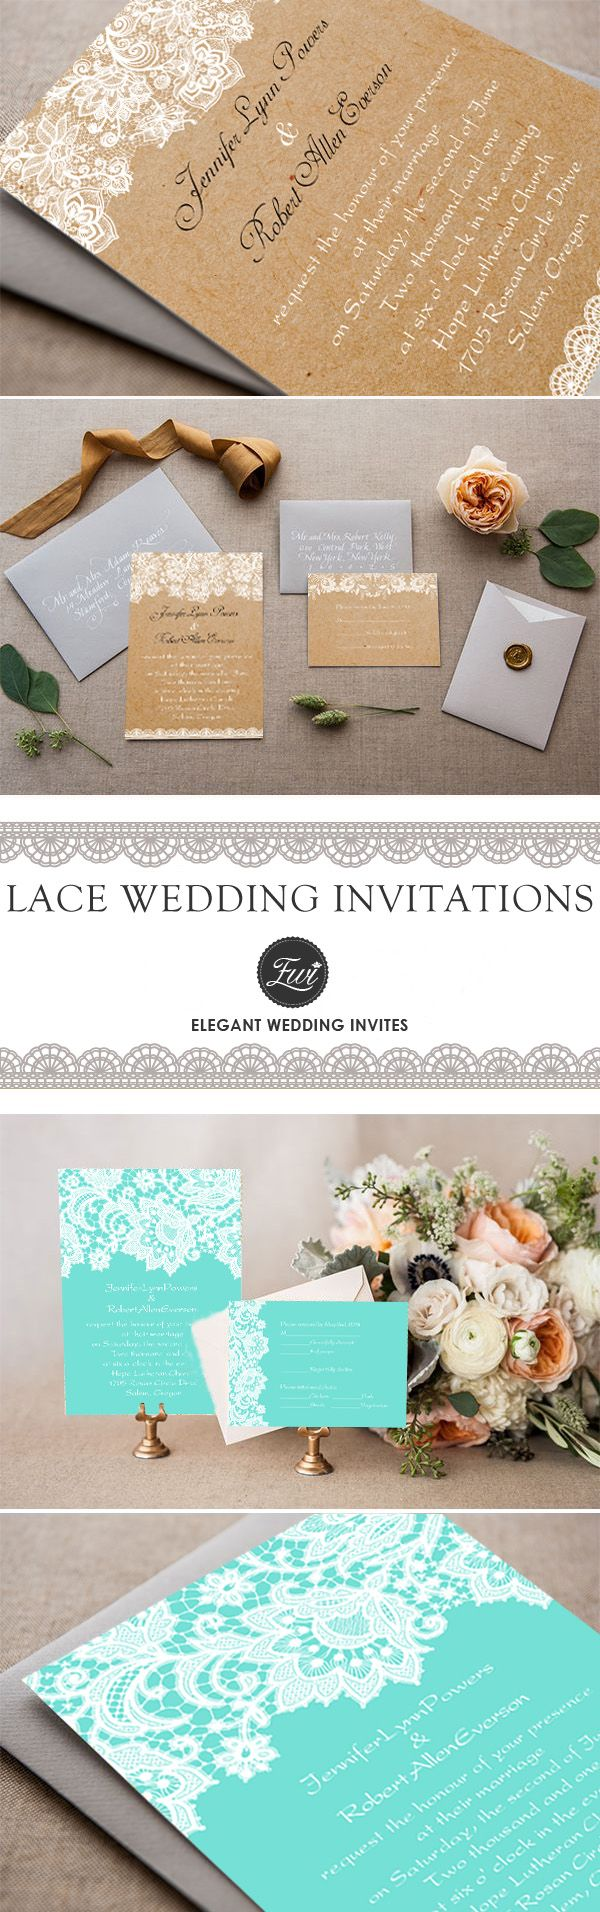 sister marriage invitation letter format%0A Enjoy     OFF On Lace Inspired Wedding Invitations